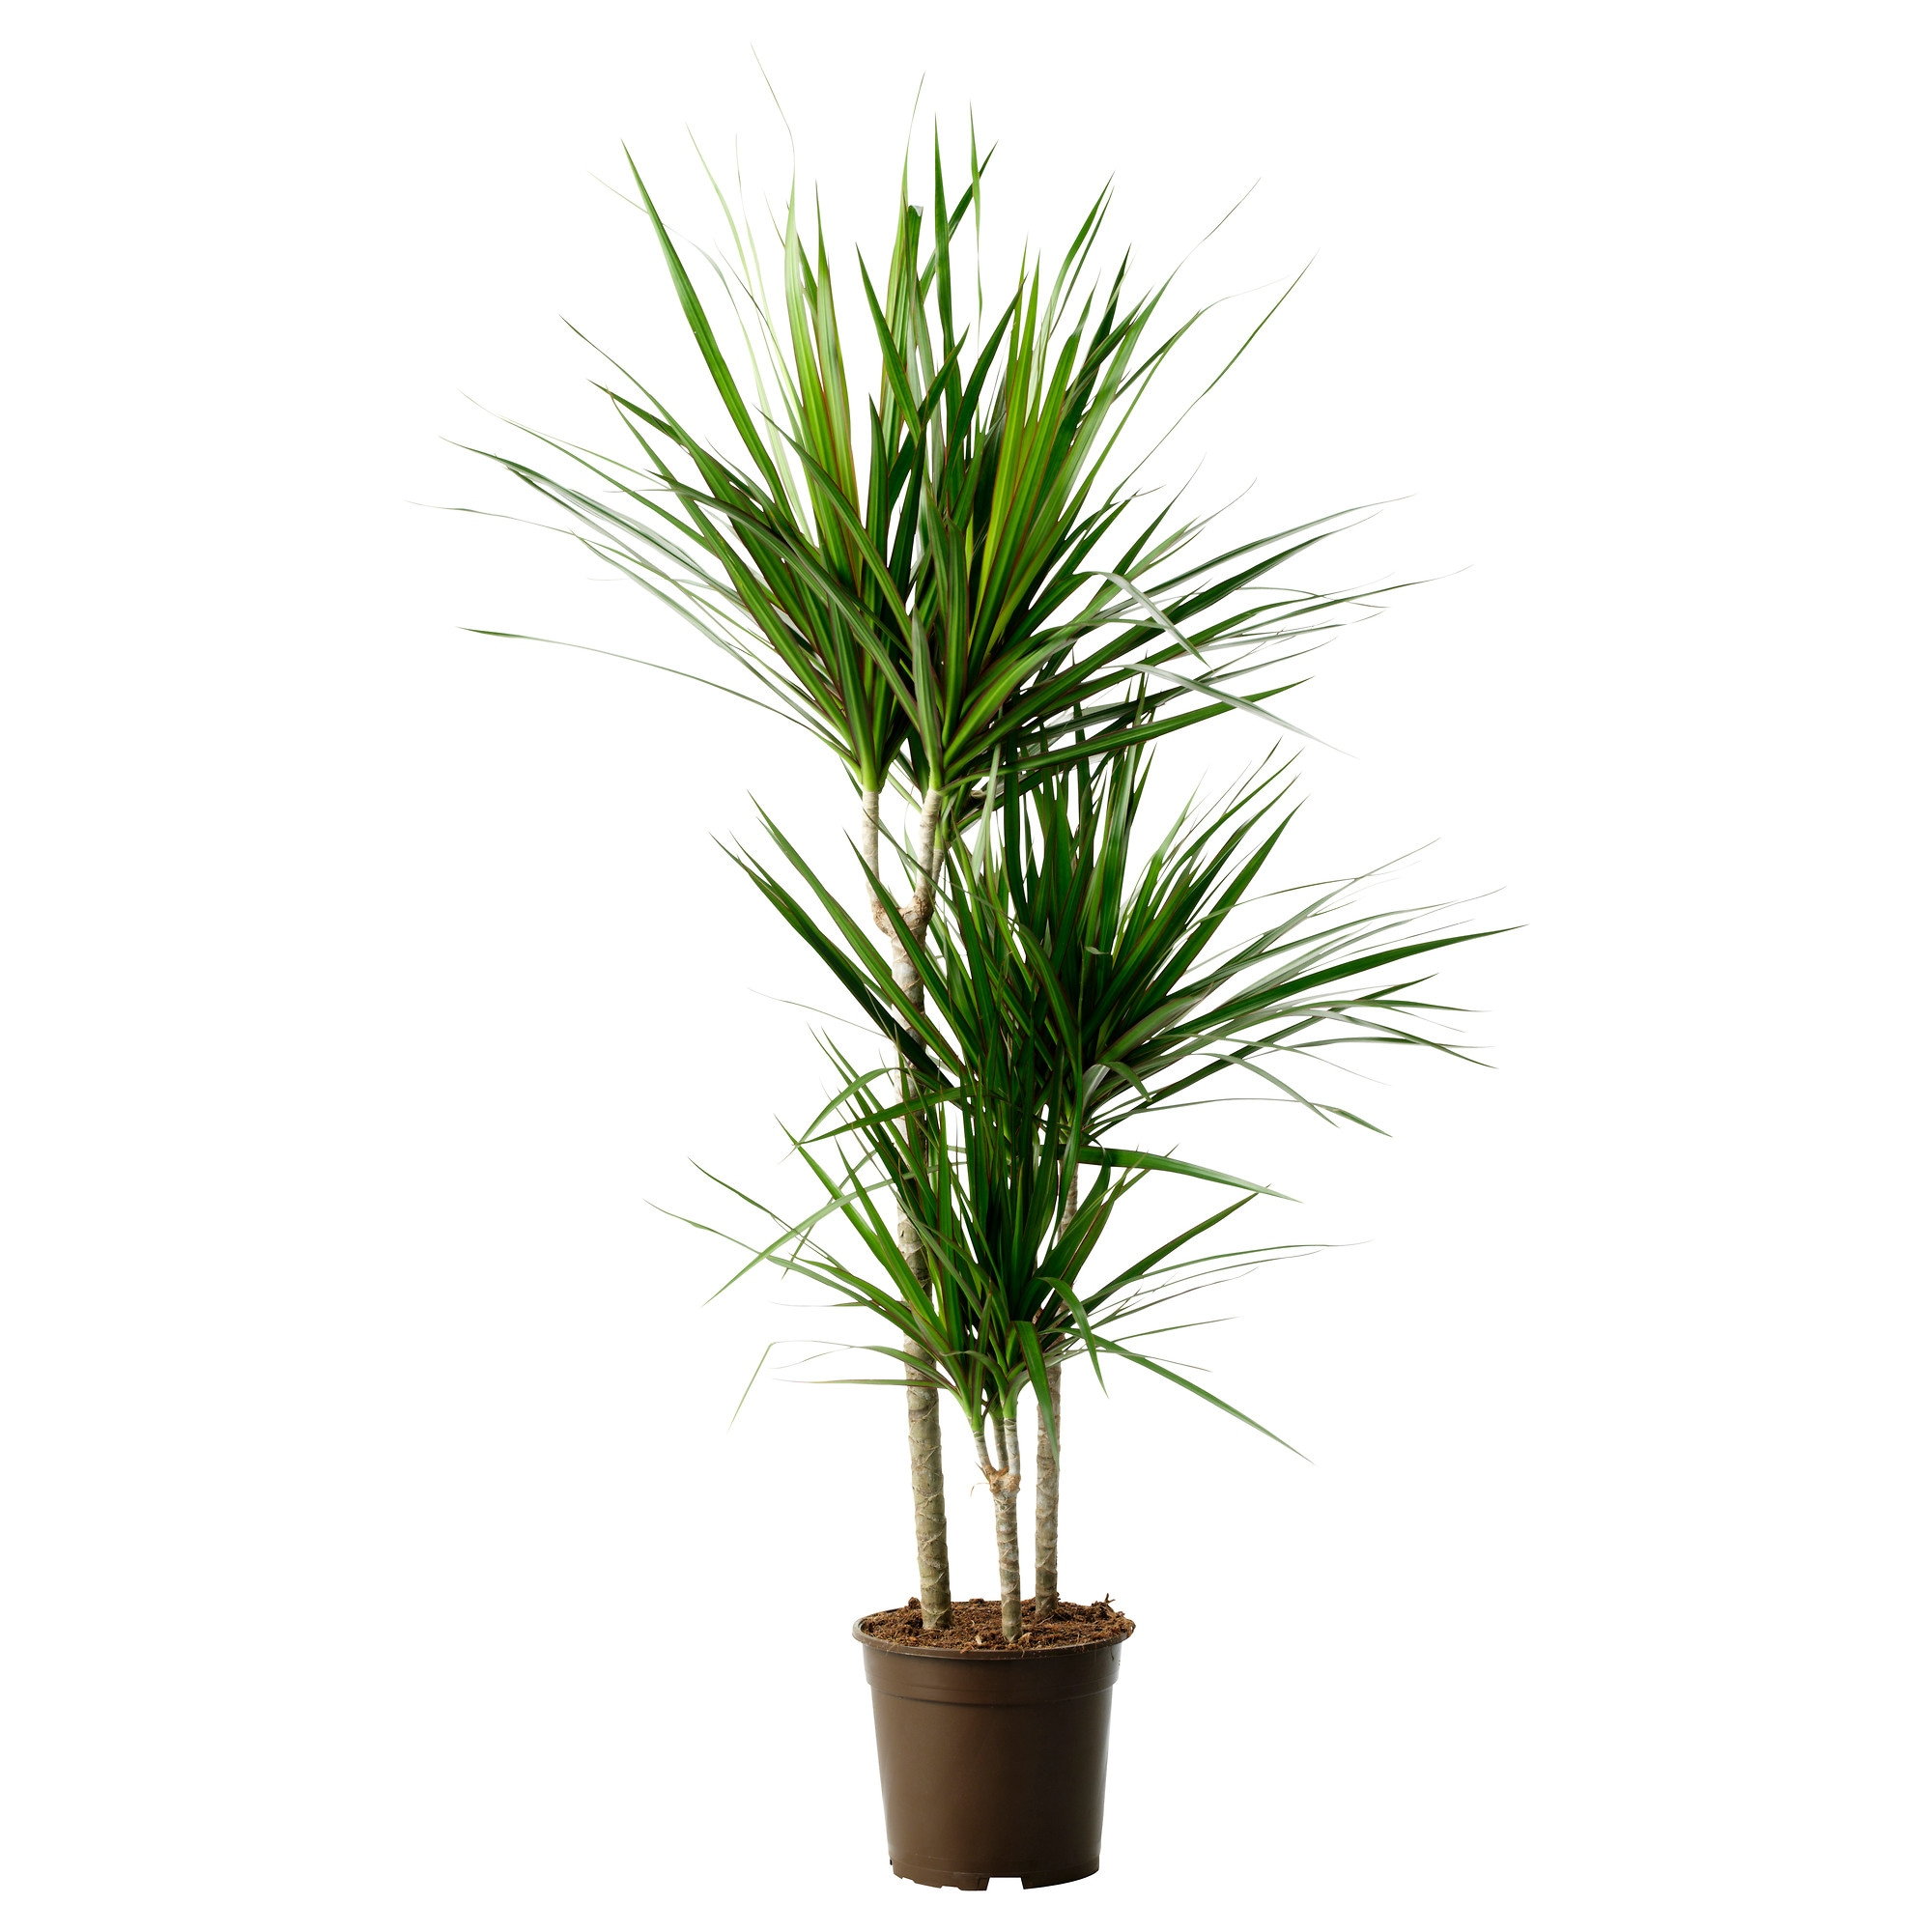 dracaena marginata potted plant dragon tree 3 stem diameter of plant pot - Tall Potted Plants